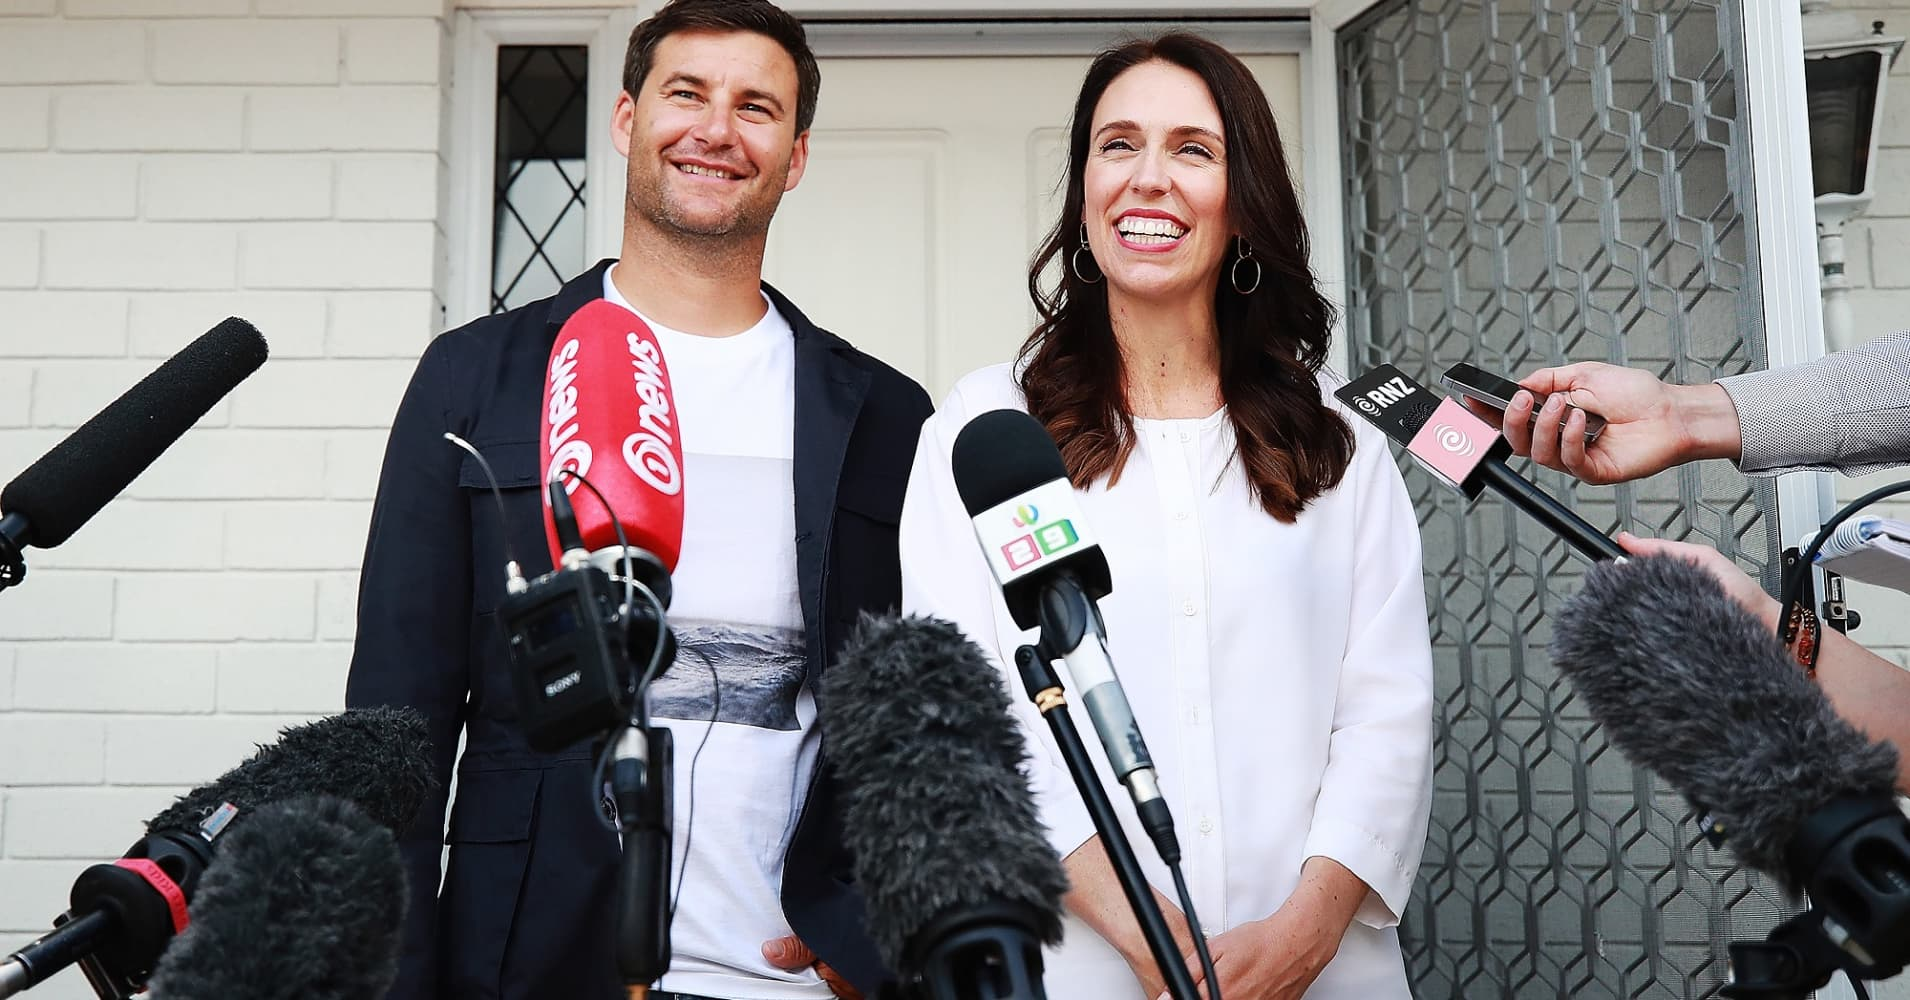 New Zealand premier says she's having a baby